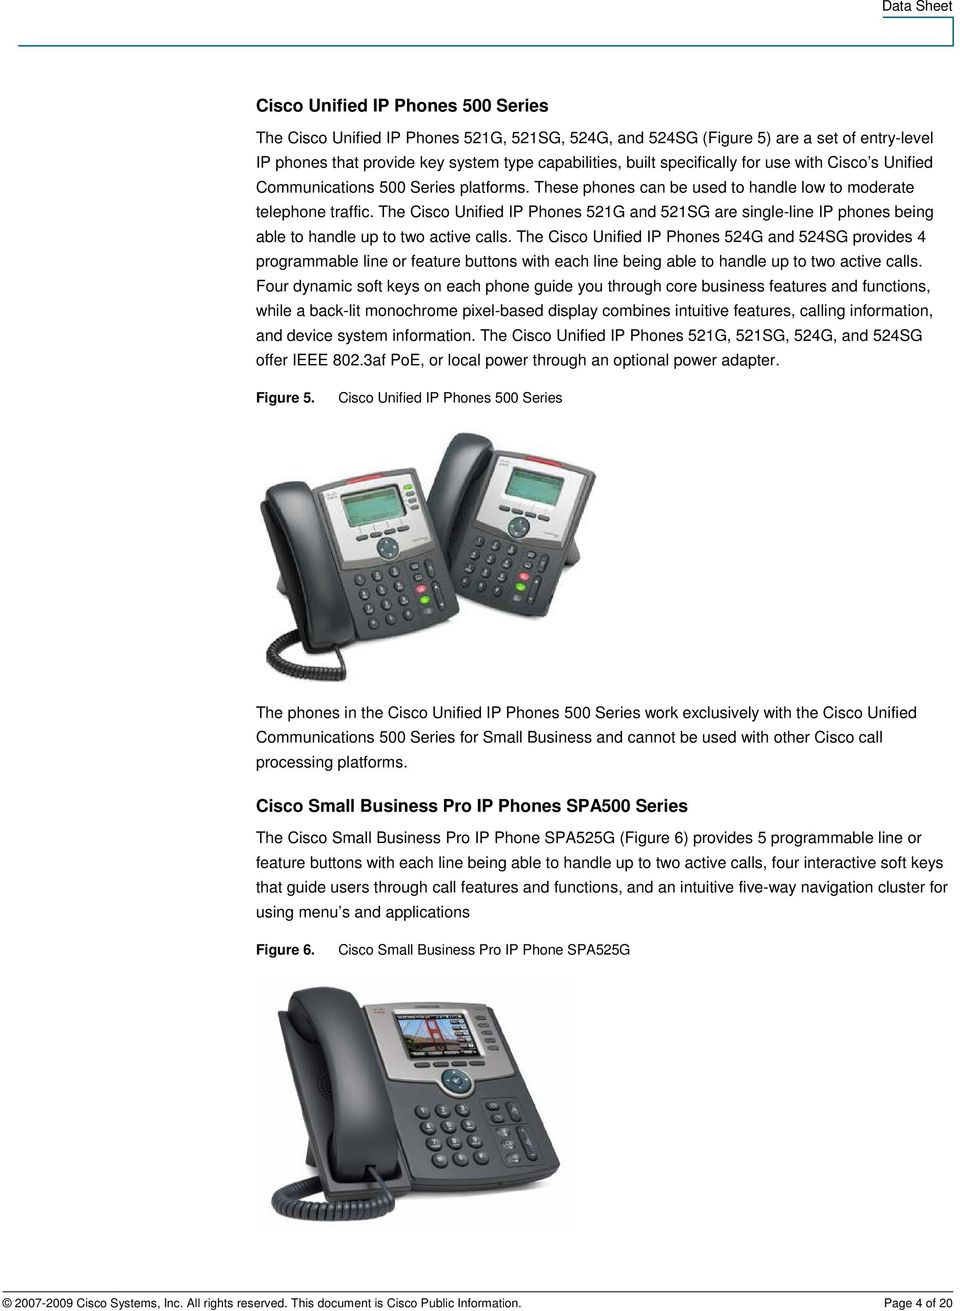 The Cisco Unified IP Phones 521G and 521SG are single-line IP phones being able to handle up to two active calls.